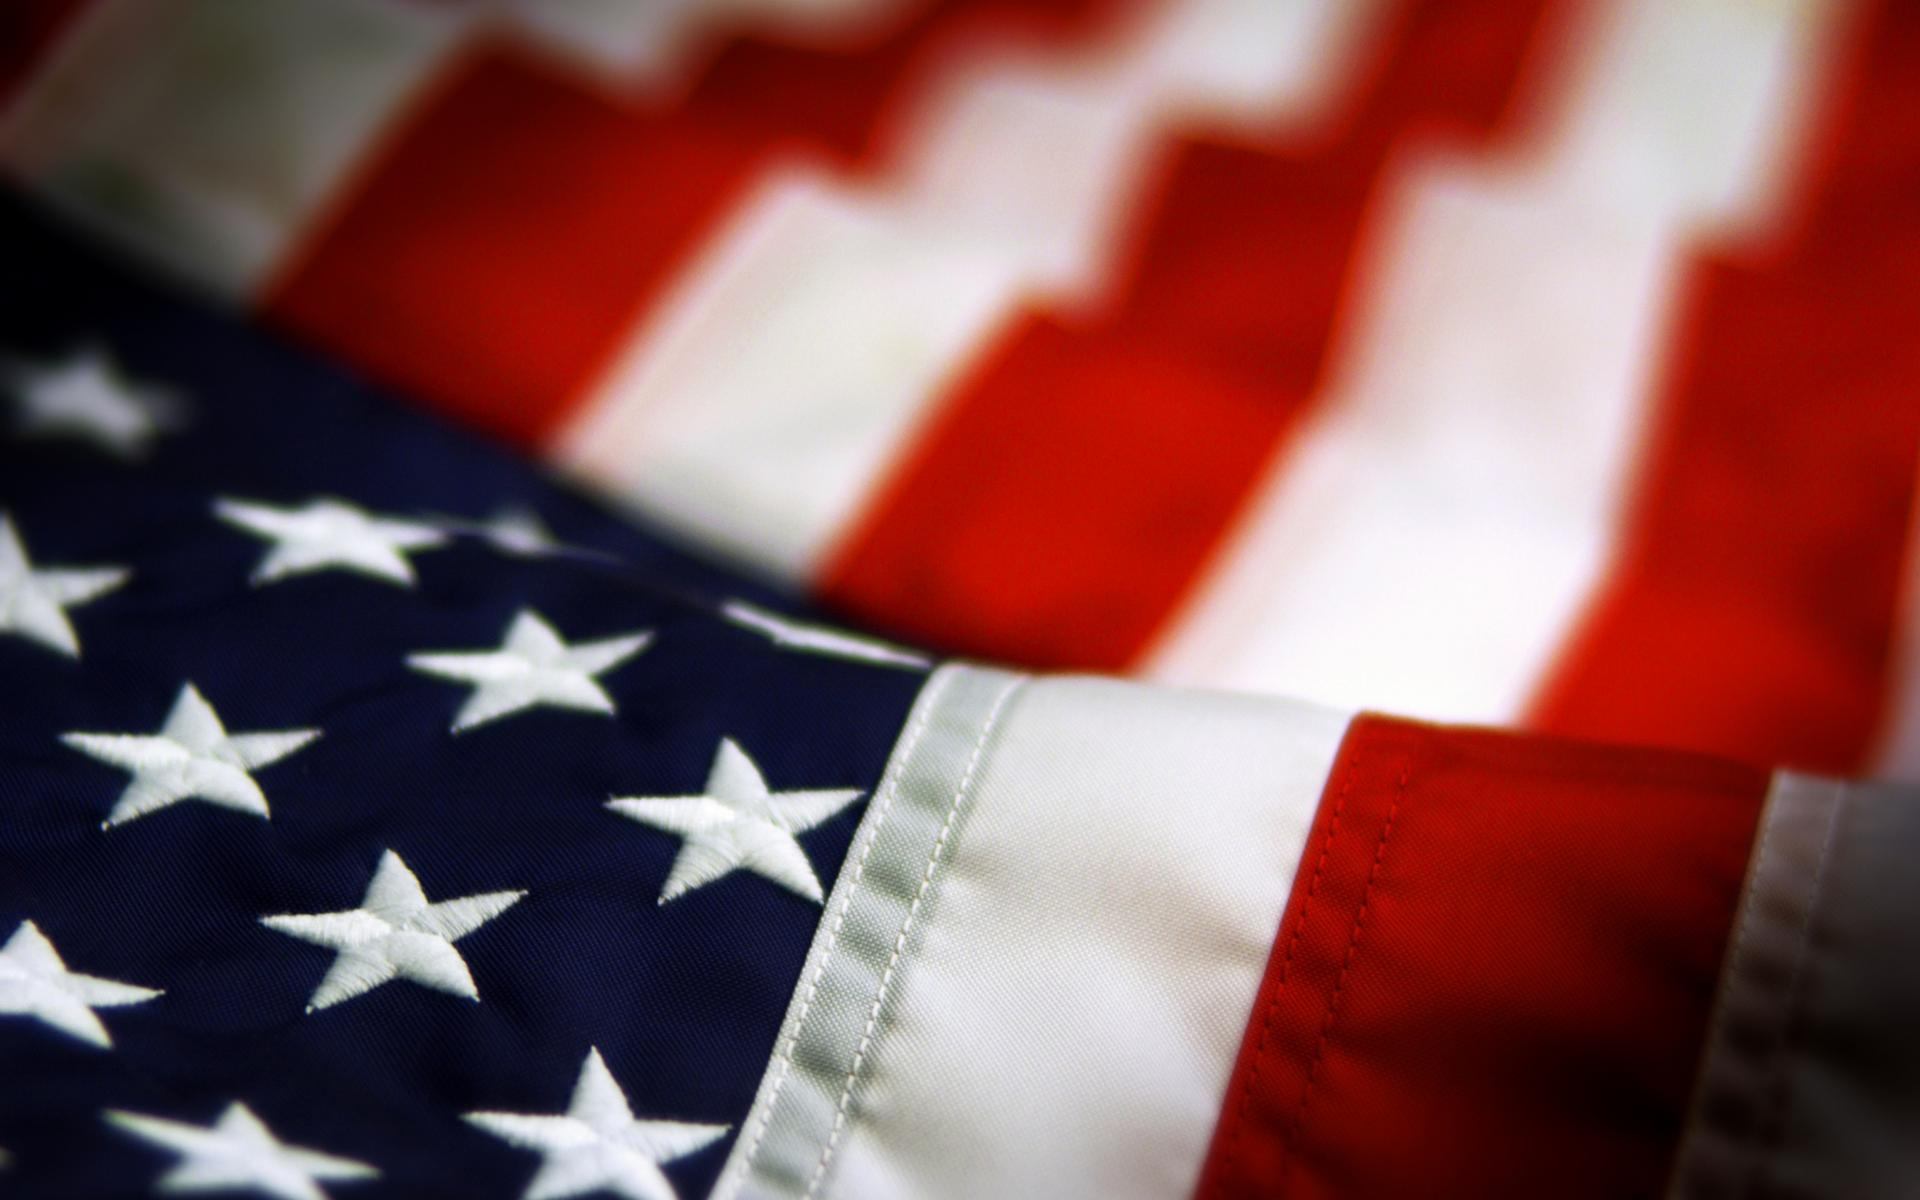 american-flag-wallpapers-28380-9410610